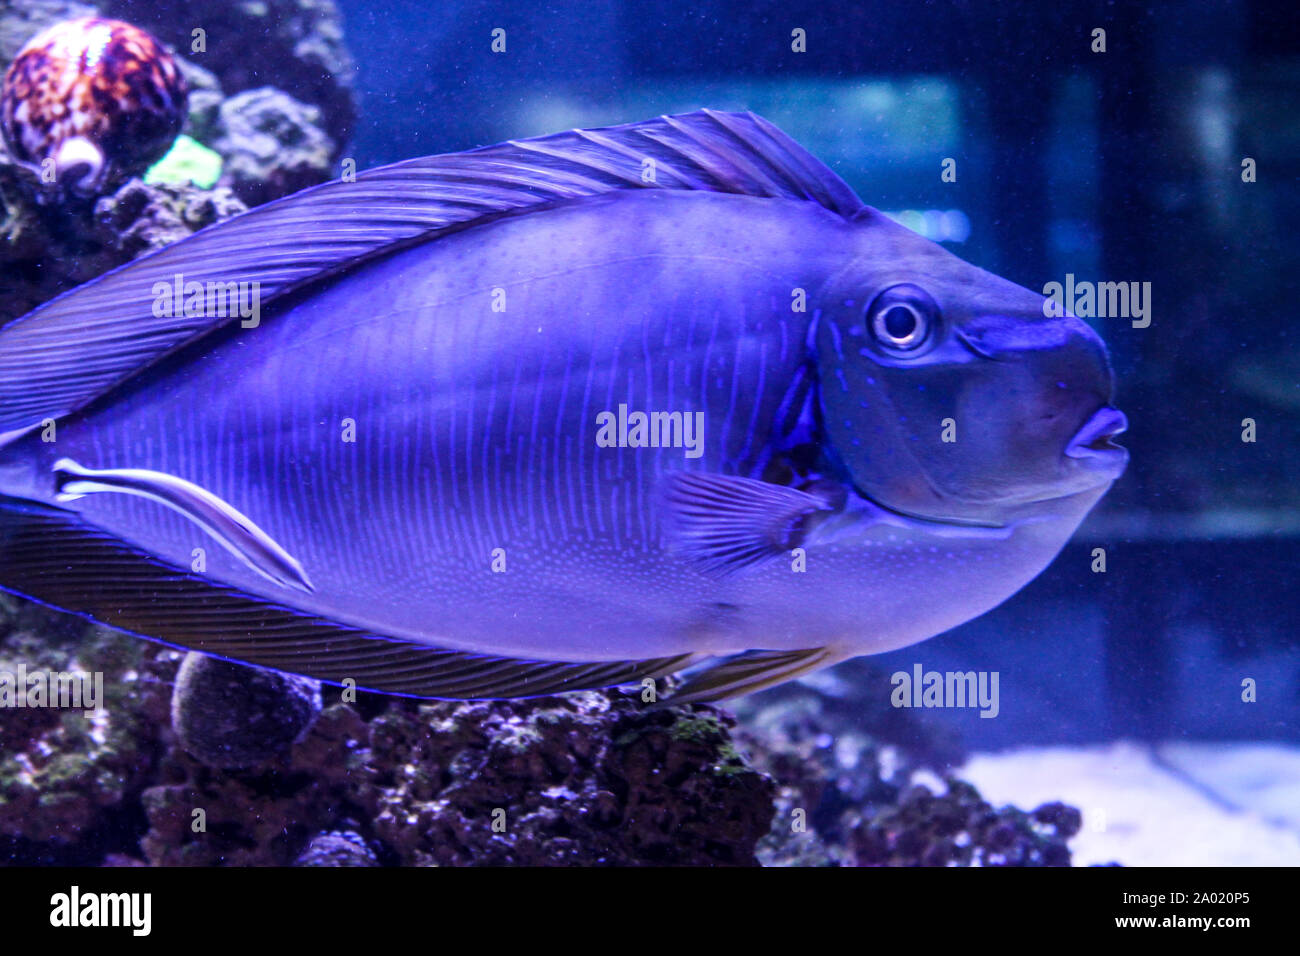 Marine Background With Purple Coral Reef Fish Sea And Ocean Life